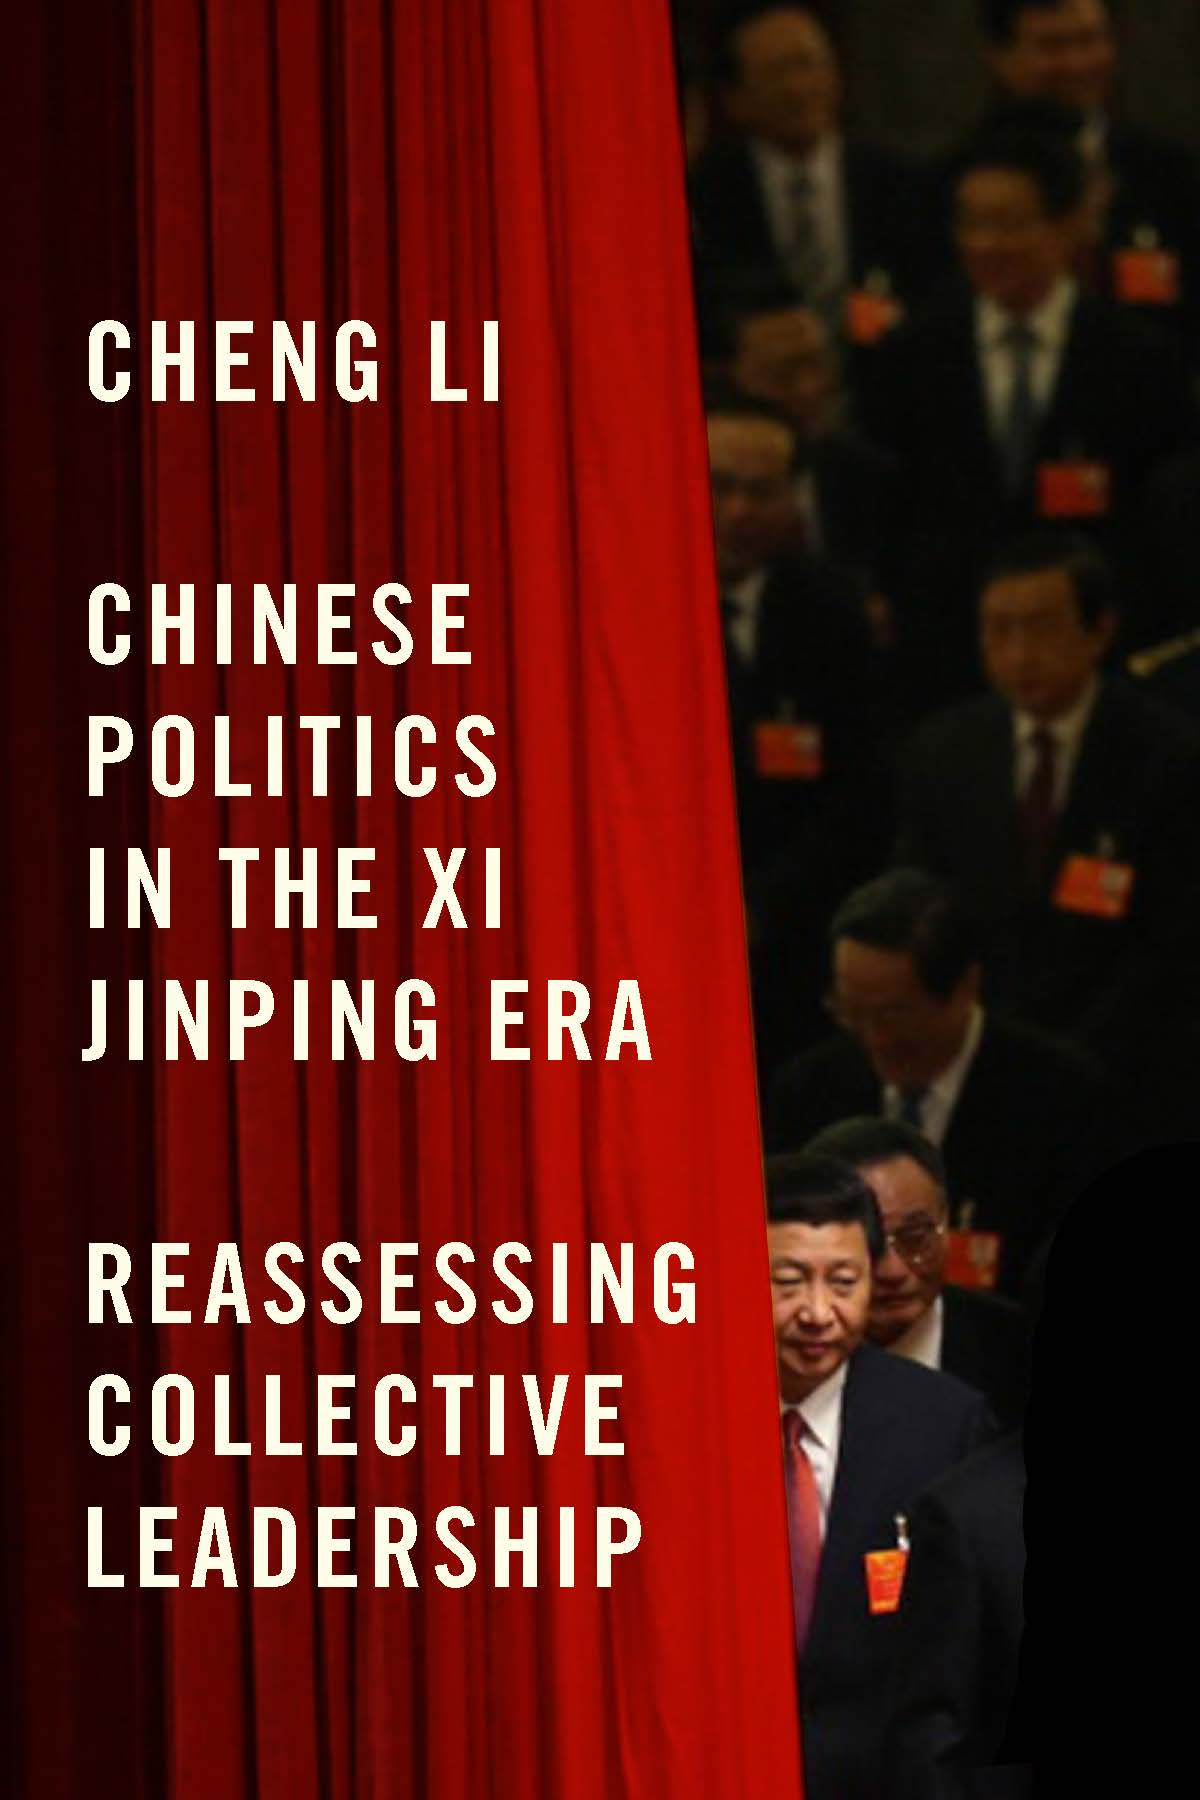 Cheng Li: Chinese Politics in the Xi Jinping Era. Reassessing Collective Leadership. Brookings Institution 2016, 494 s.